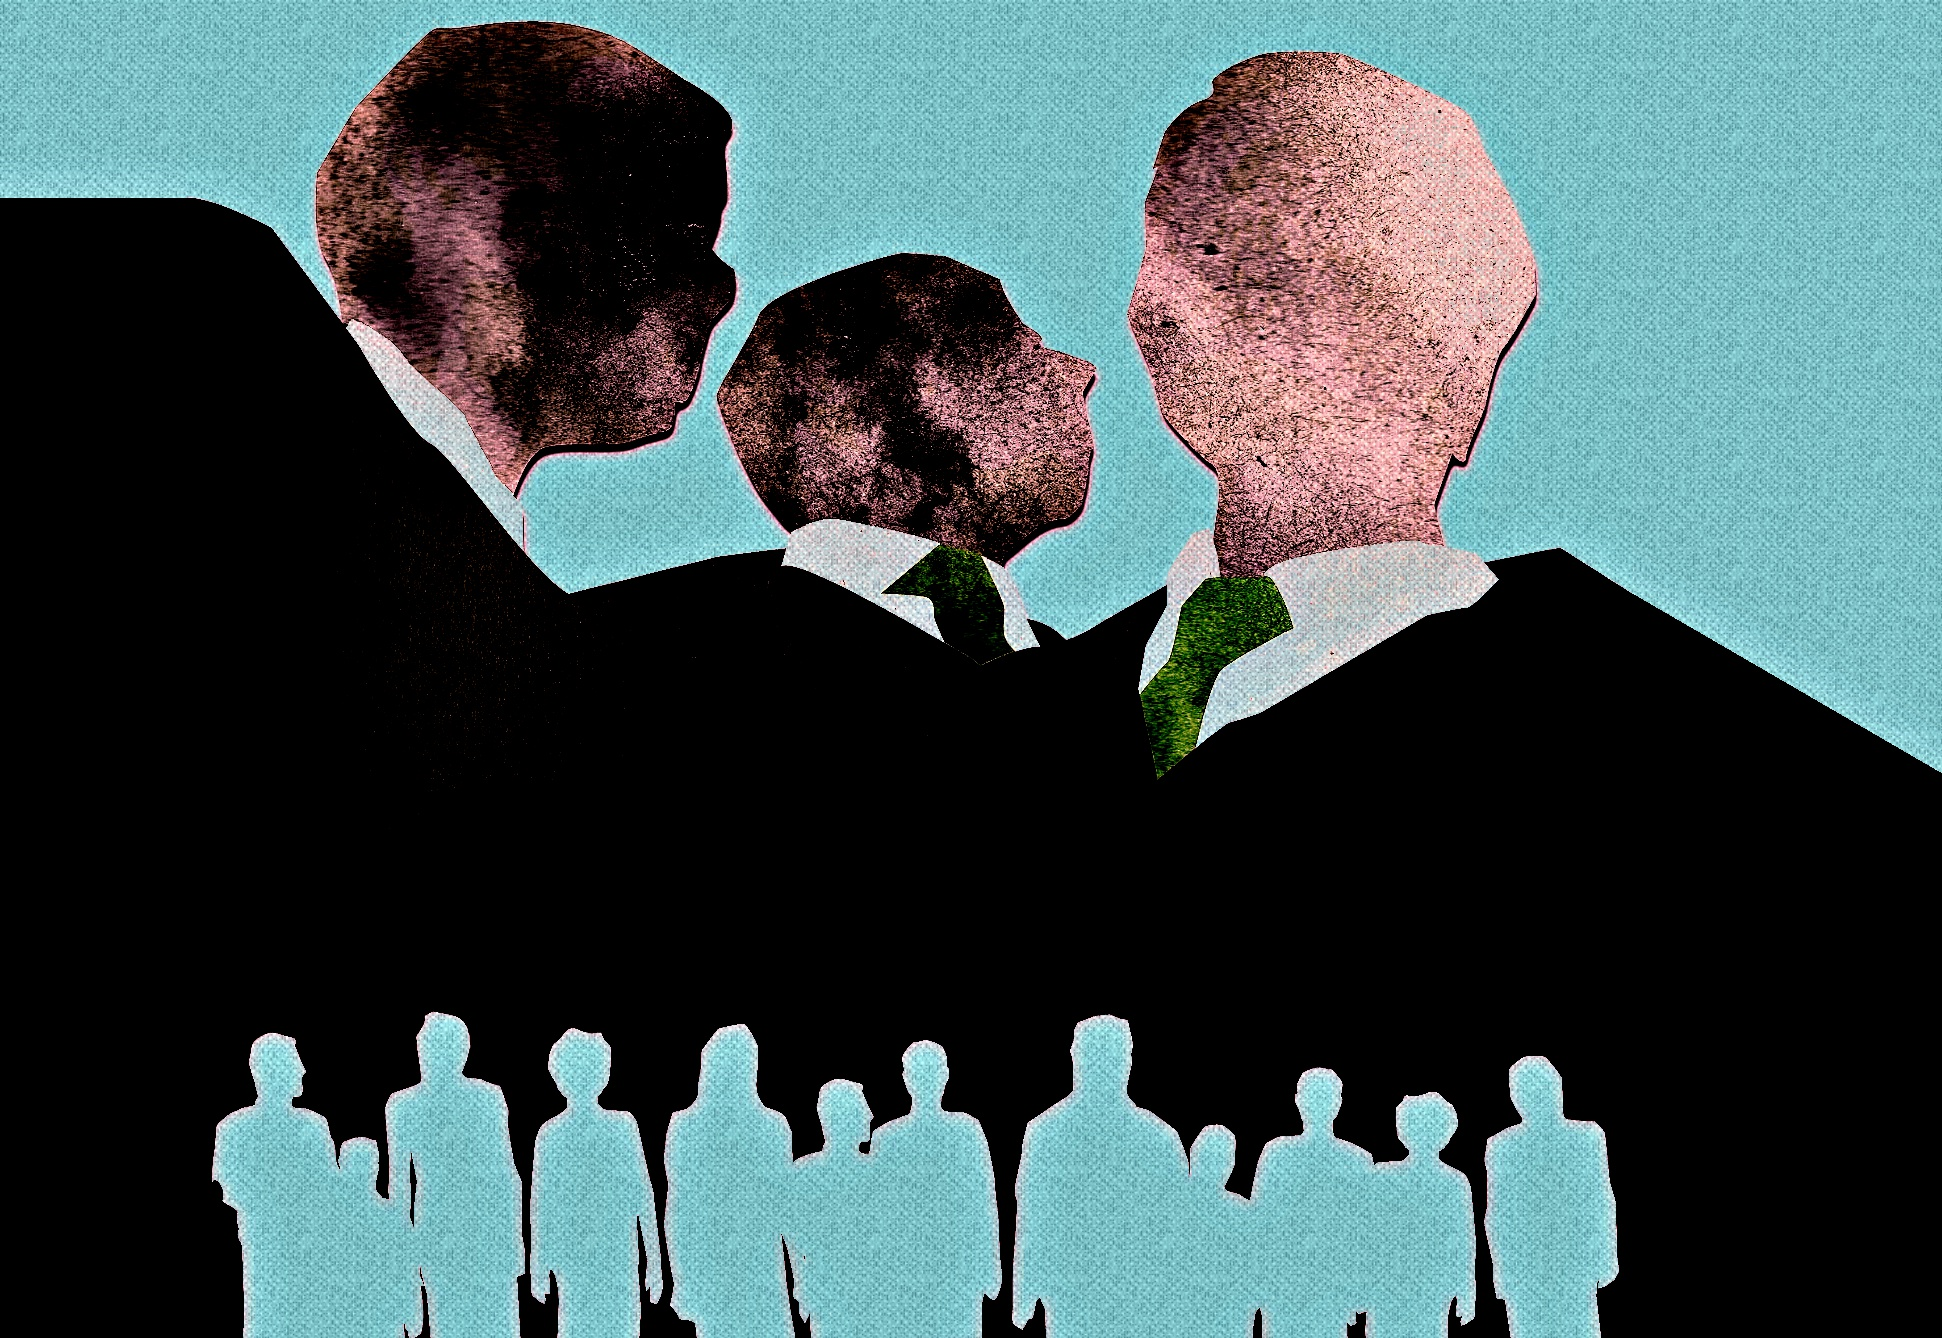 A power imbalance gets in the way of setting smart policy on donor-advised funds